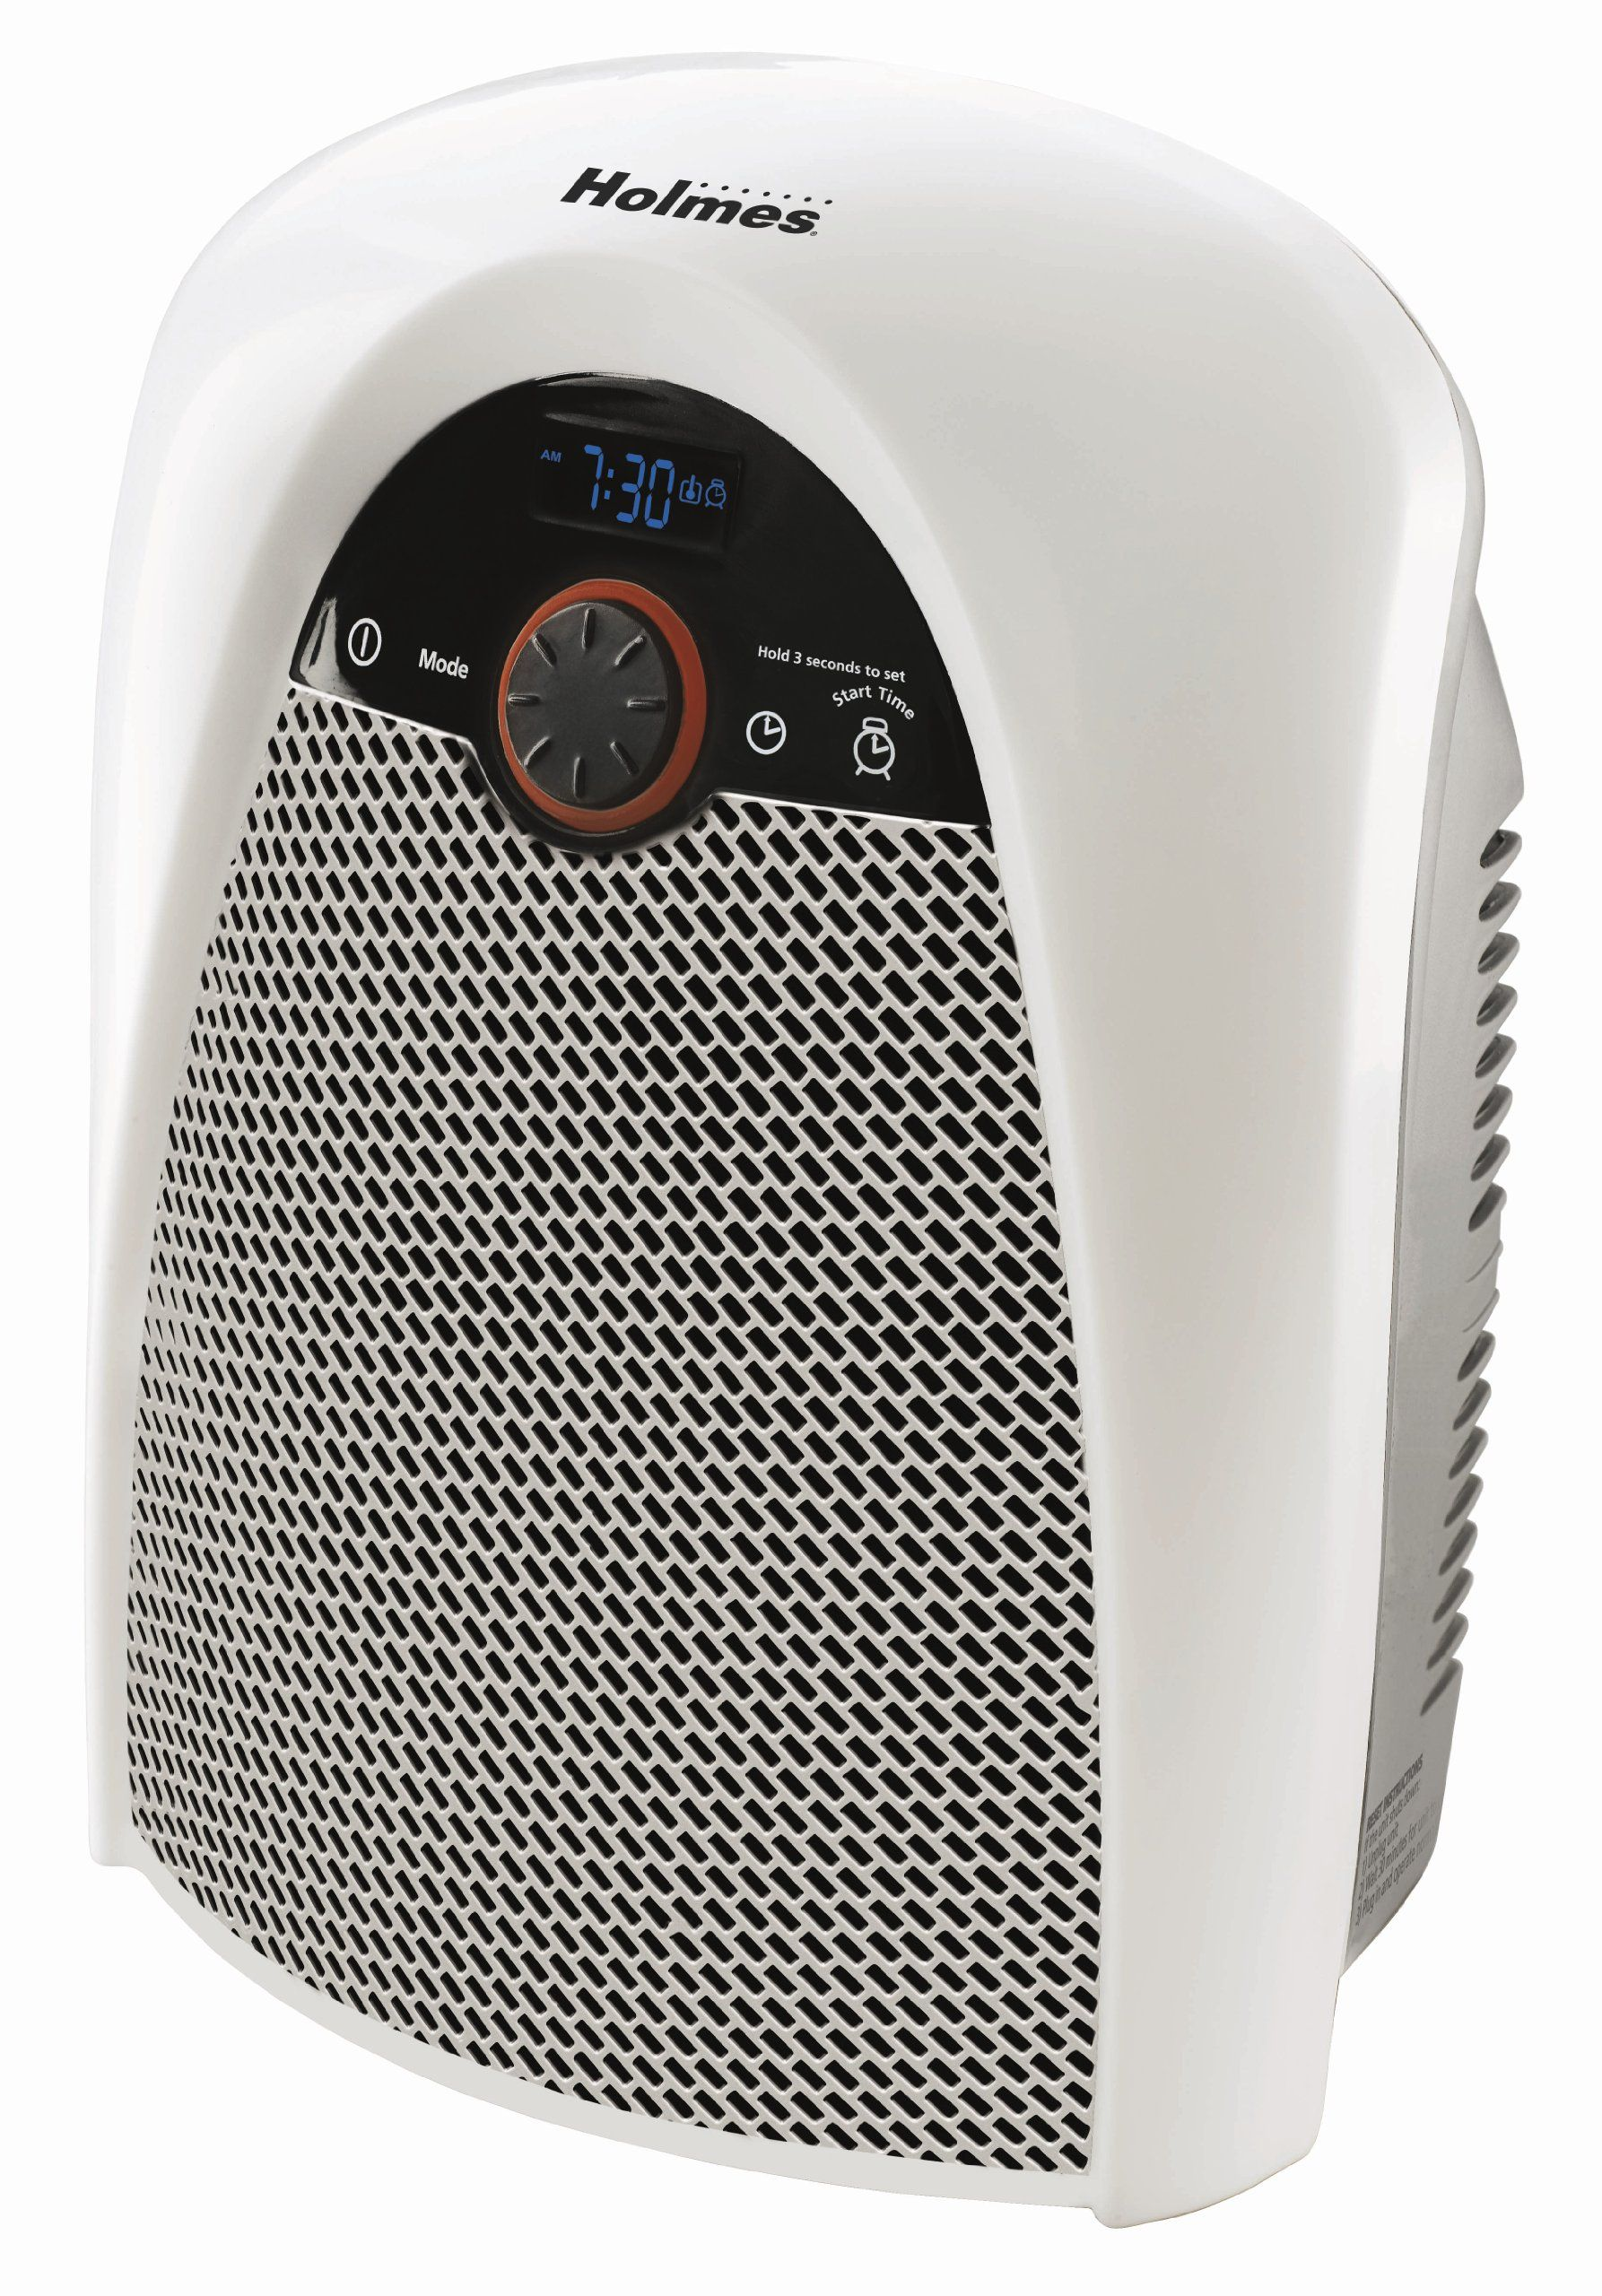 amazon com holmes heater with bathroom safe plug and timer rh pinterest com